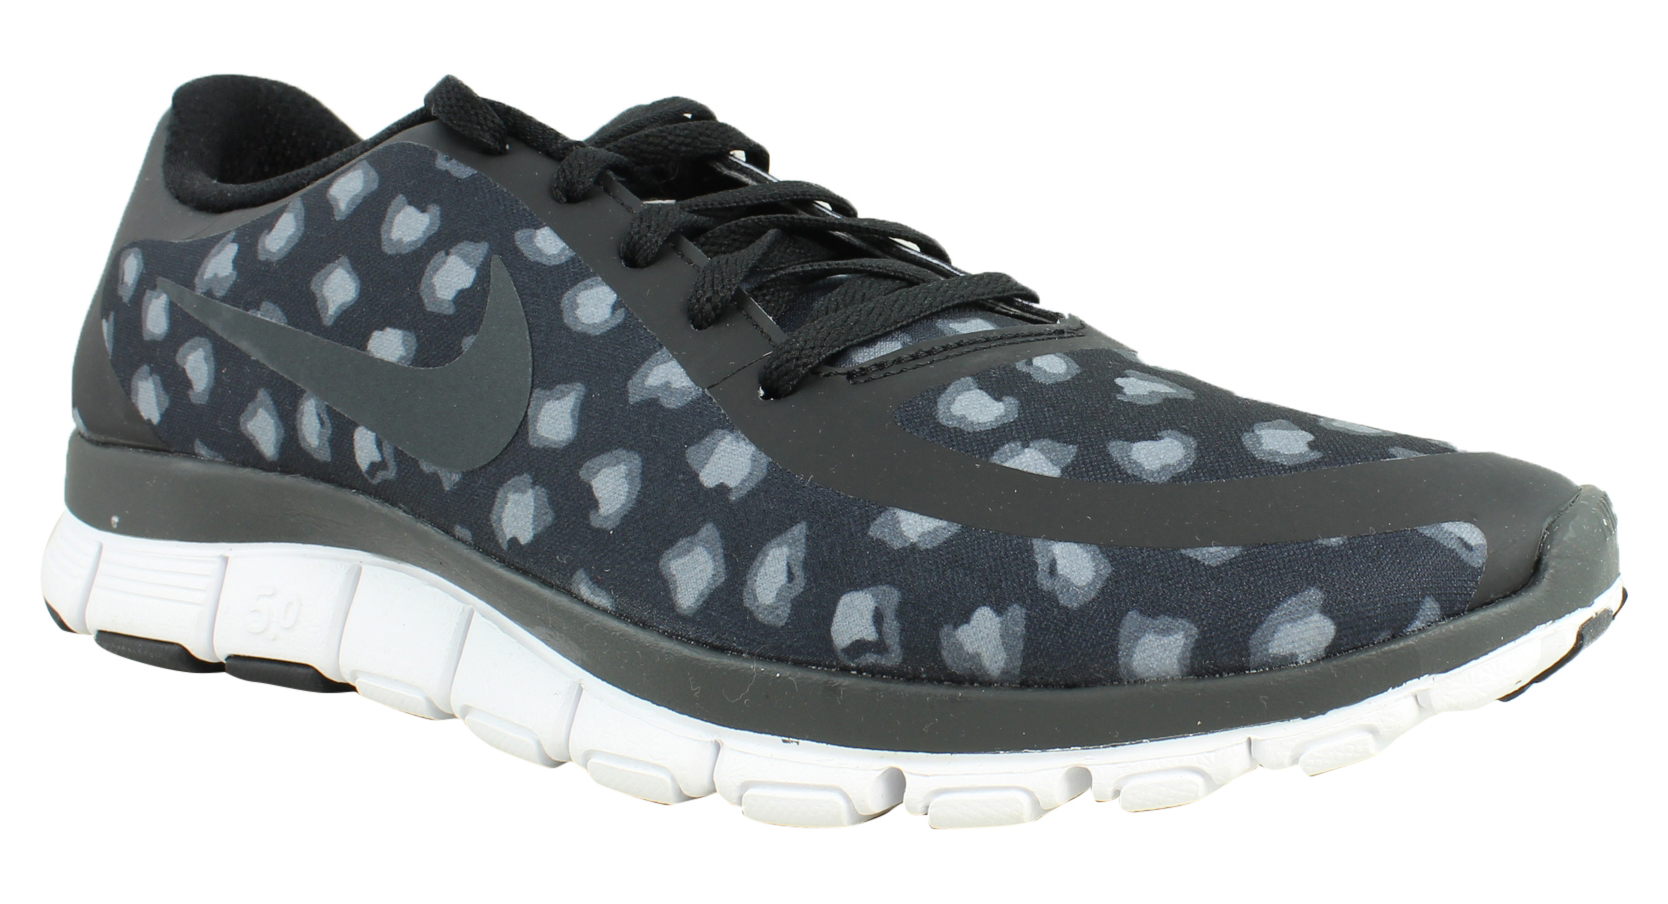 2339a8c8e3ef New Nike Womens Free 5.0 V4 Black Anthracite DarkGrey White Running Shoes  Size